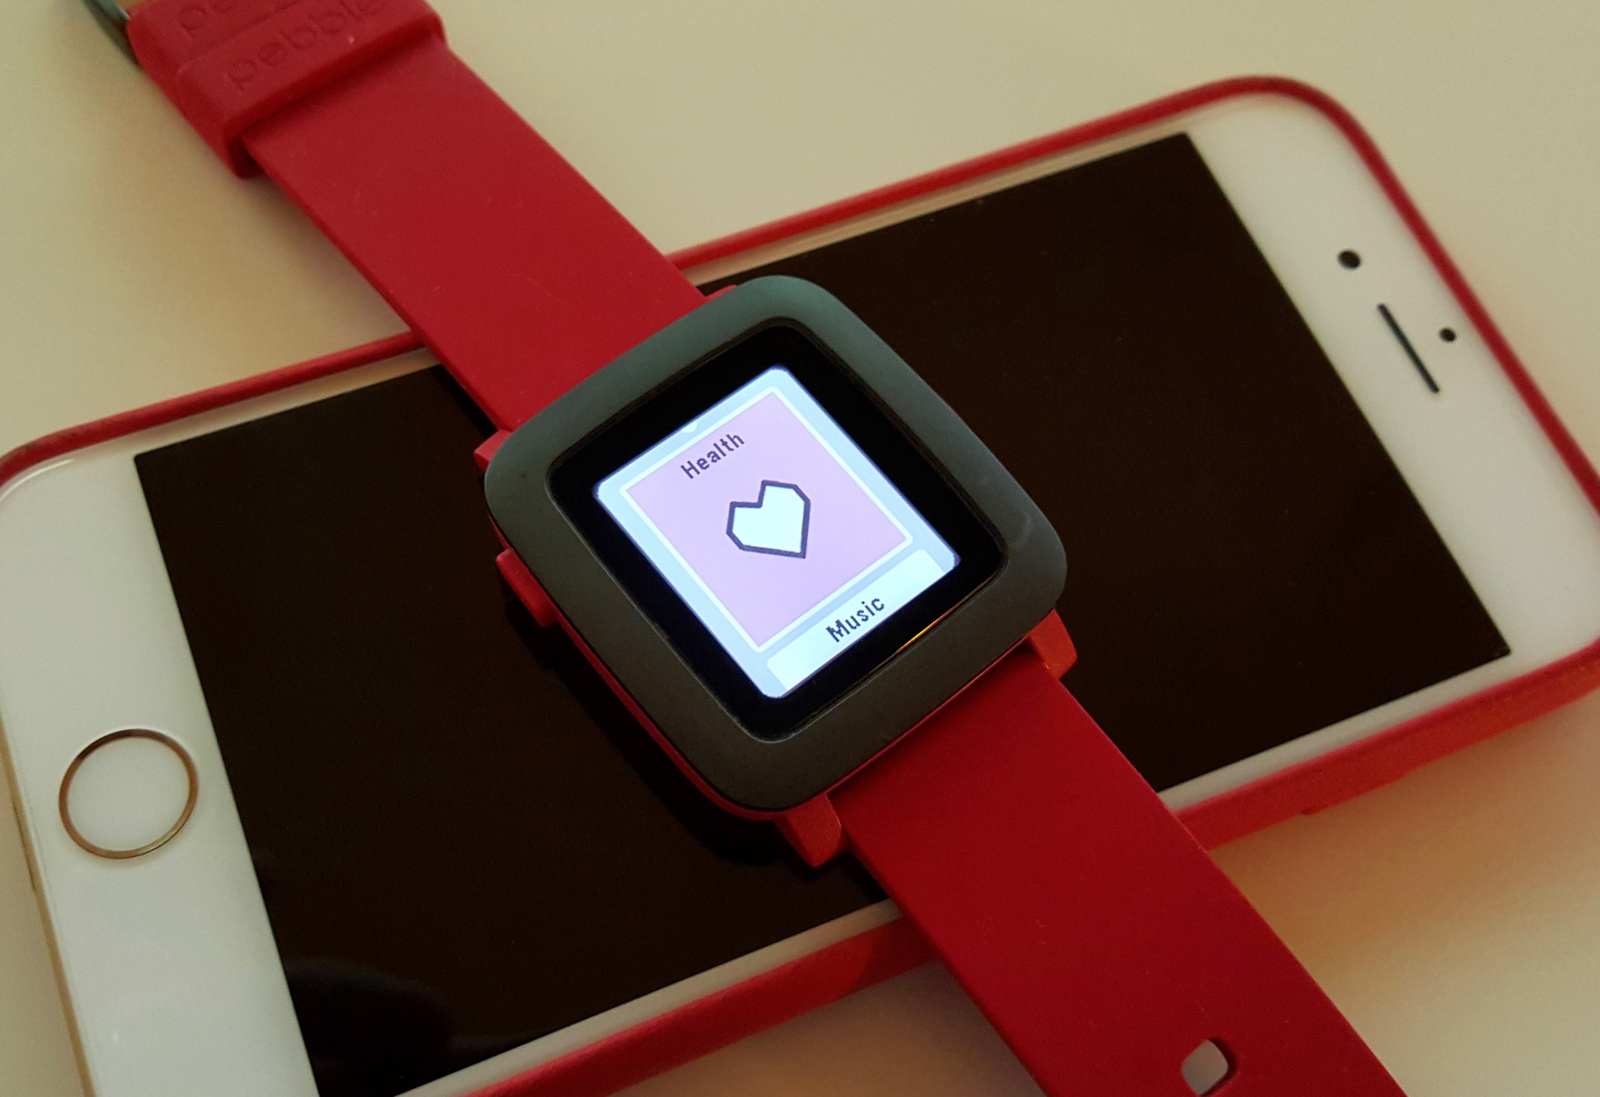 its-about-time-pebble-health-app-plays-catch-up-with-apple-watch-image-cultofandroidcomwp-contentuploads2015122015-12-15-183101-jpg